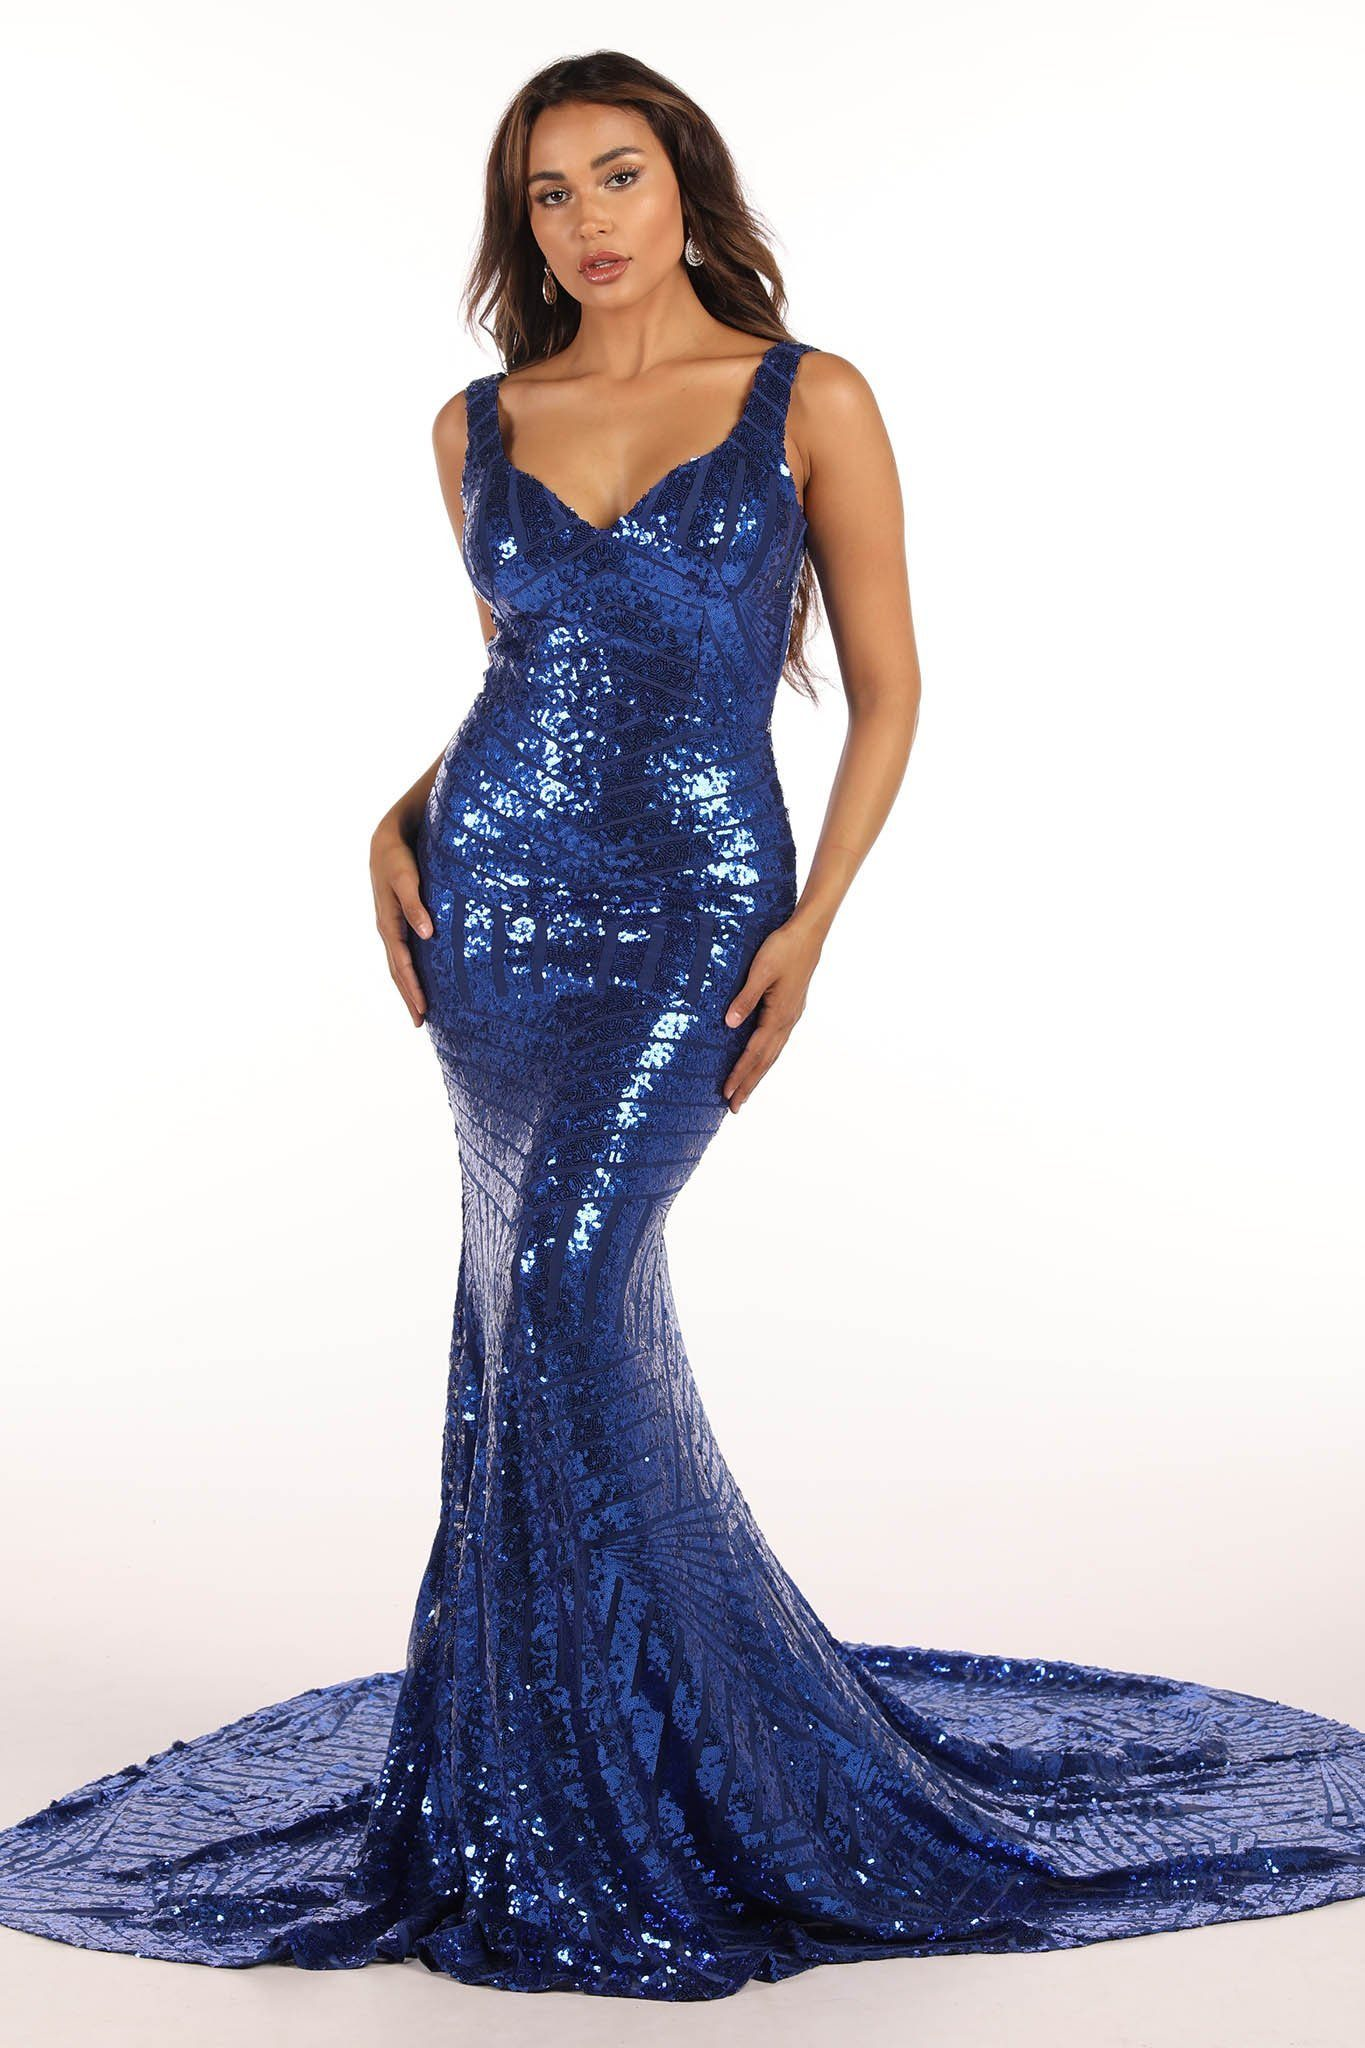 Royal Blue Geometric-Pattern Sequin Floor Length Gown with Sweetheart Neckline, Shoulder Straps, V Open Back and Long Train